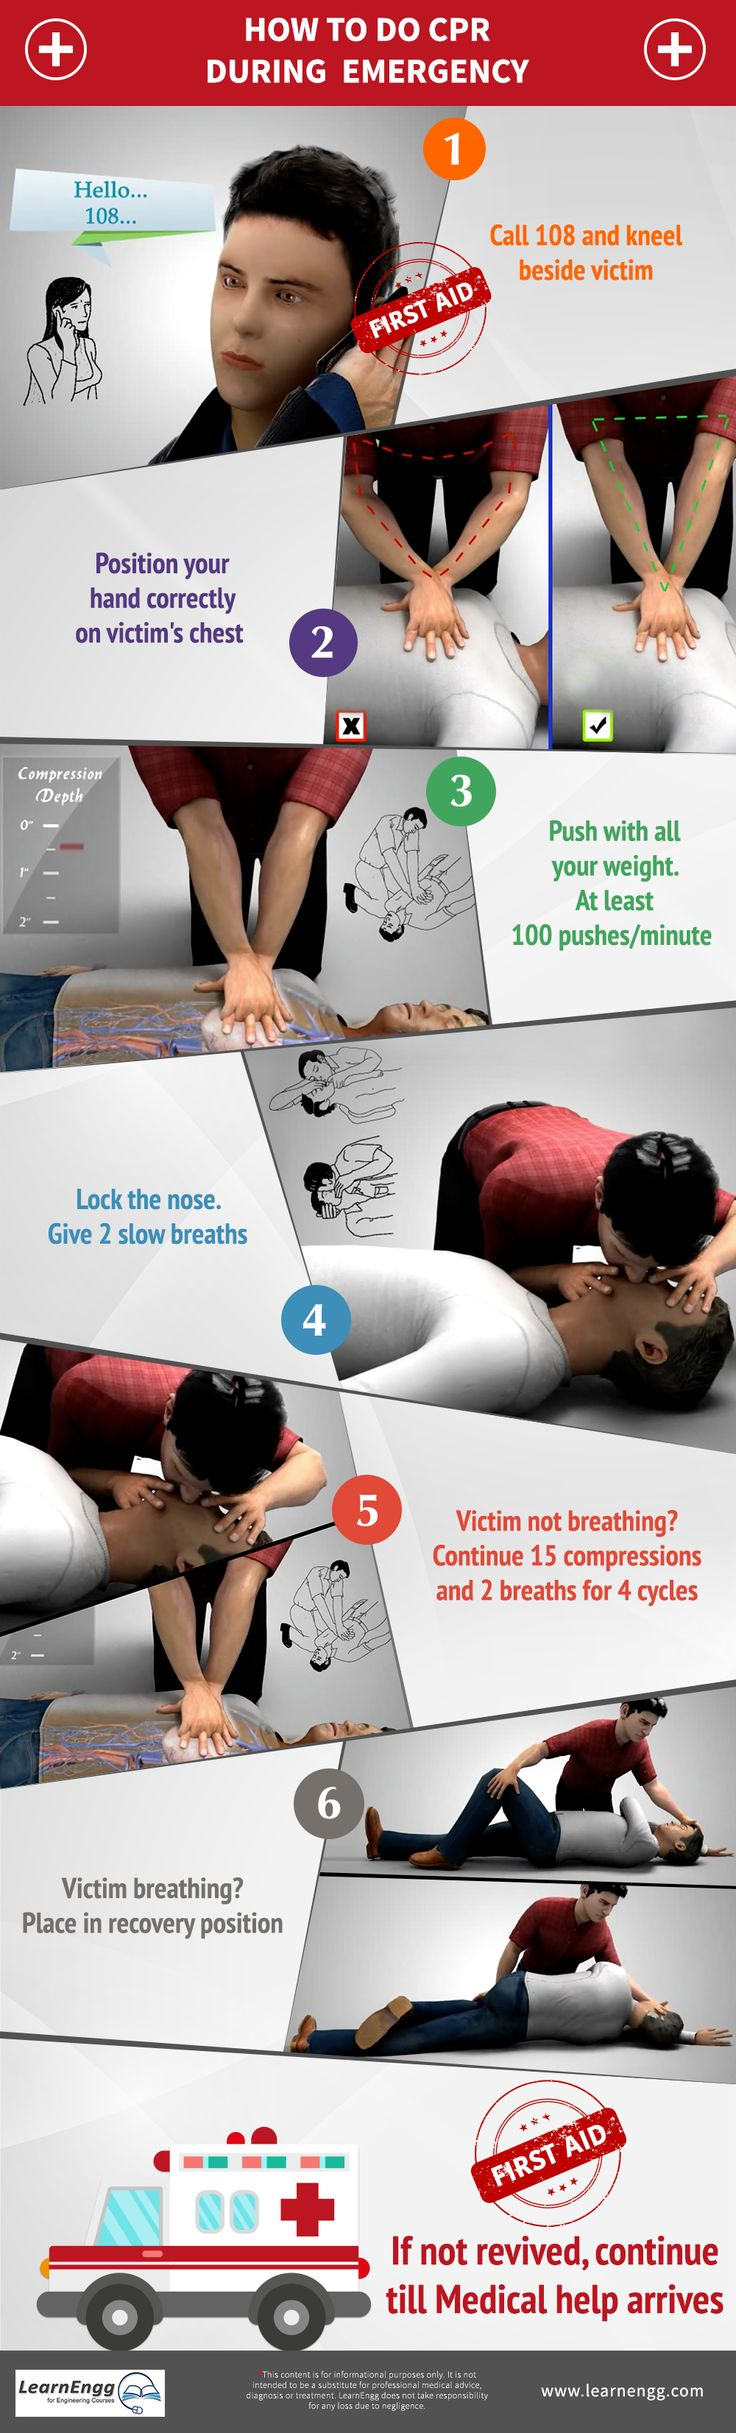 How to do CPR during Emergency? Learn from our blog and video: [Click on the image] ‪#‎learnengg‬ ‪#‎cpr‬ ‪#‎firstaid‬